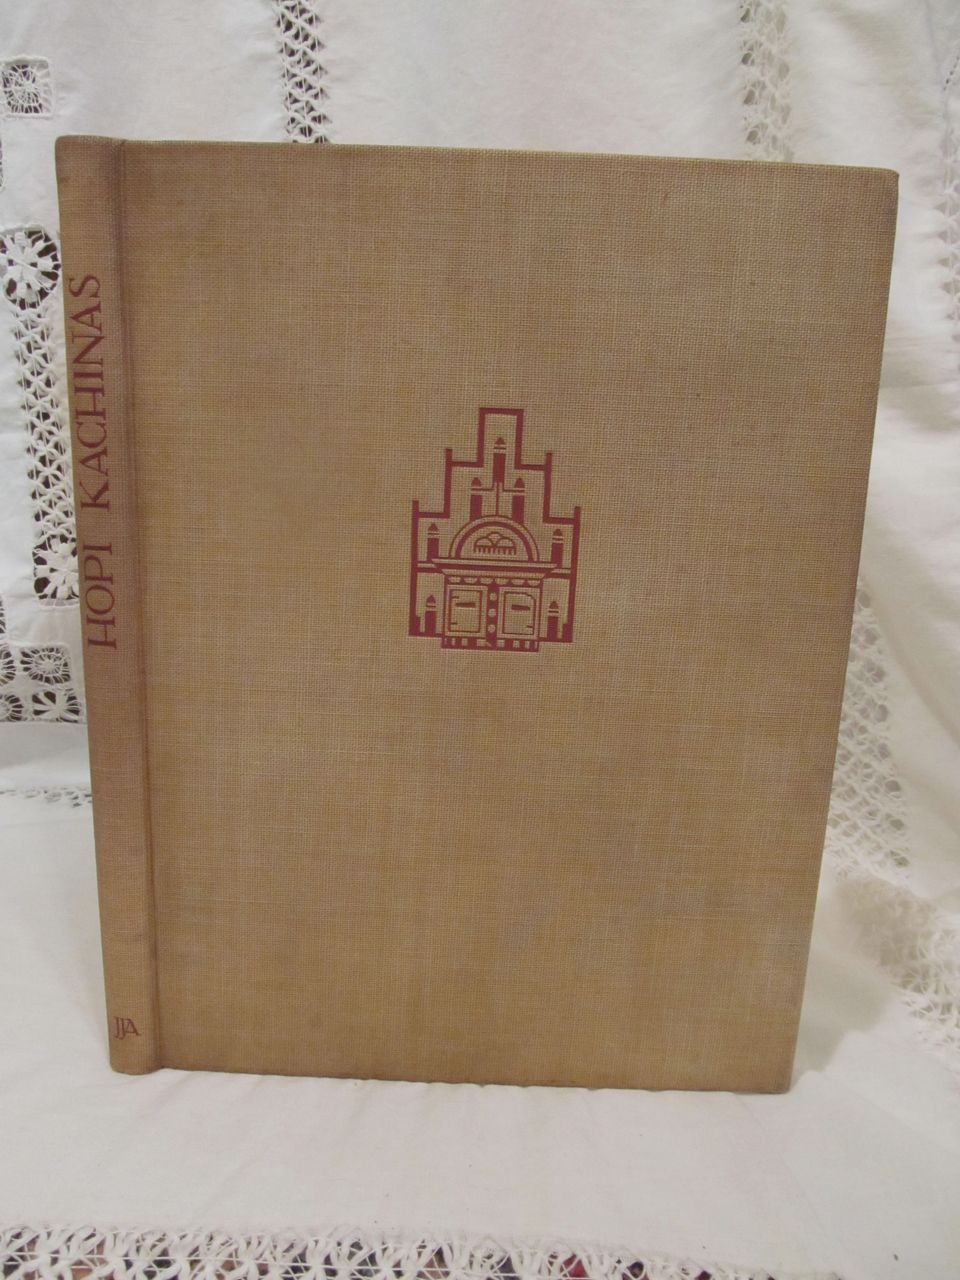 1938 Hopi Kachinas,First Edition, 28 Color Plates, Edwin Earl, Edward A Kennard, Published by J J Augustin, The Waverly Press